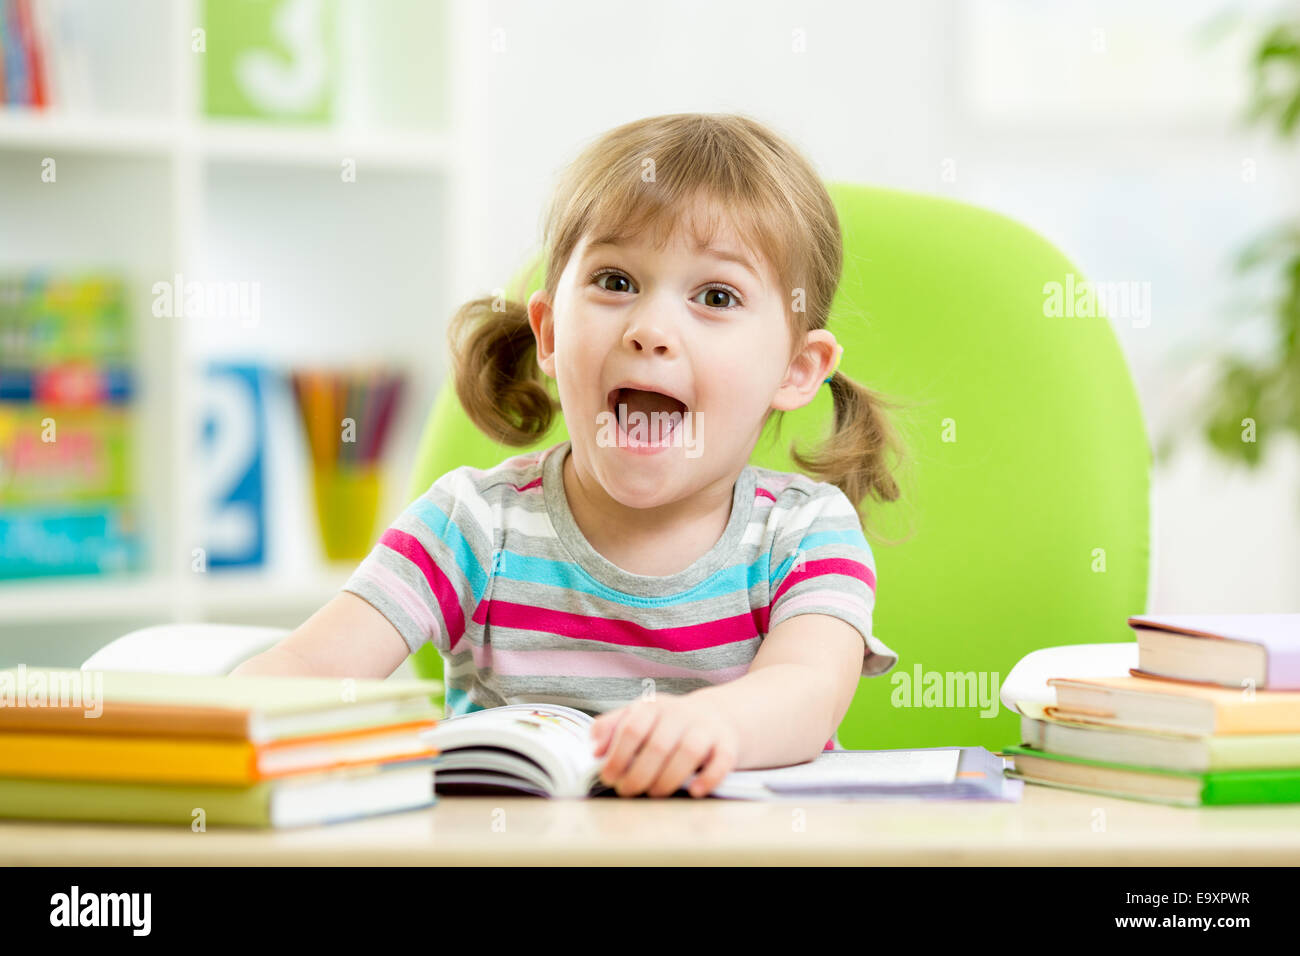 Happy kid reading book at table in nursery - Stock Image